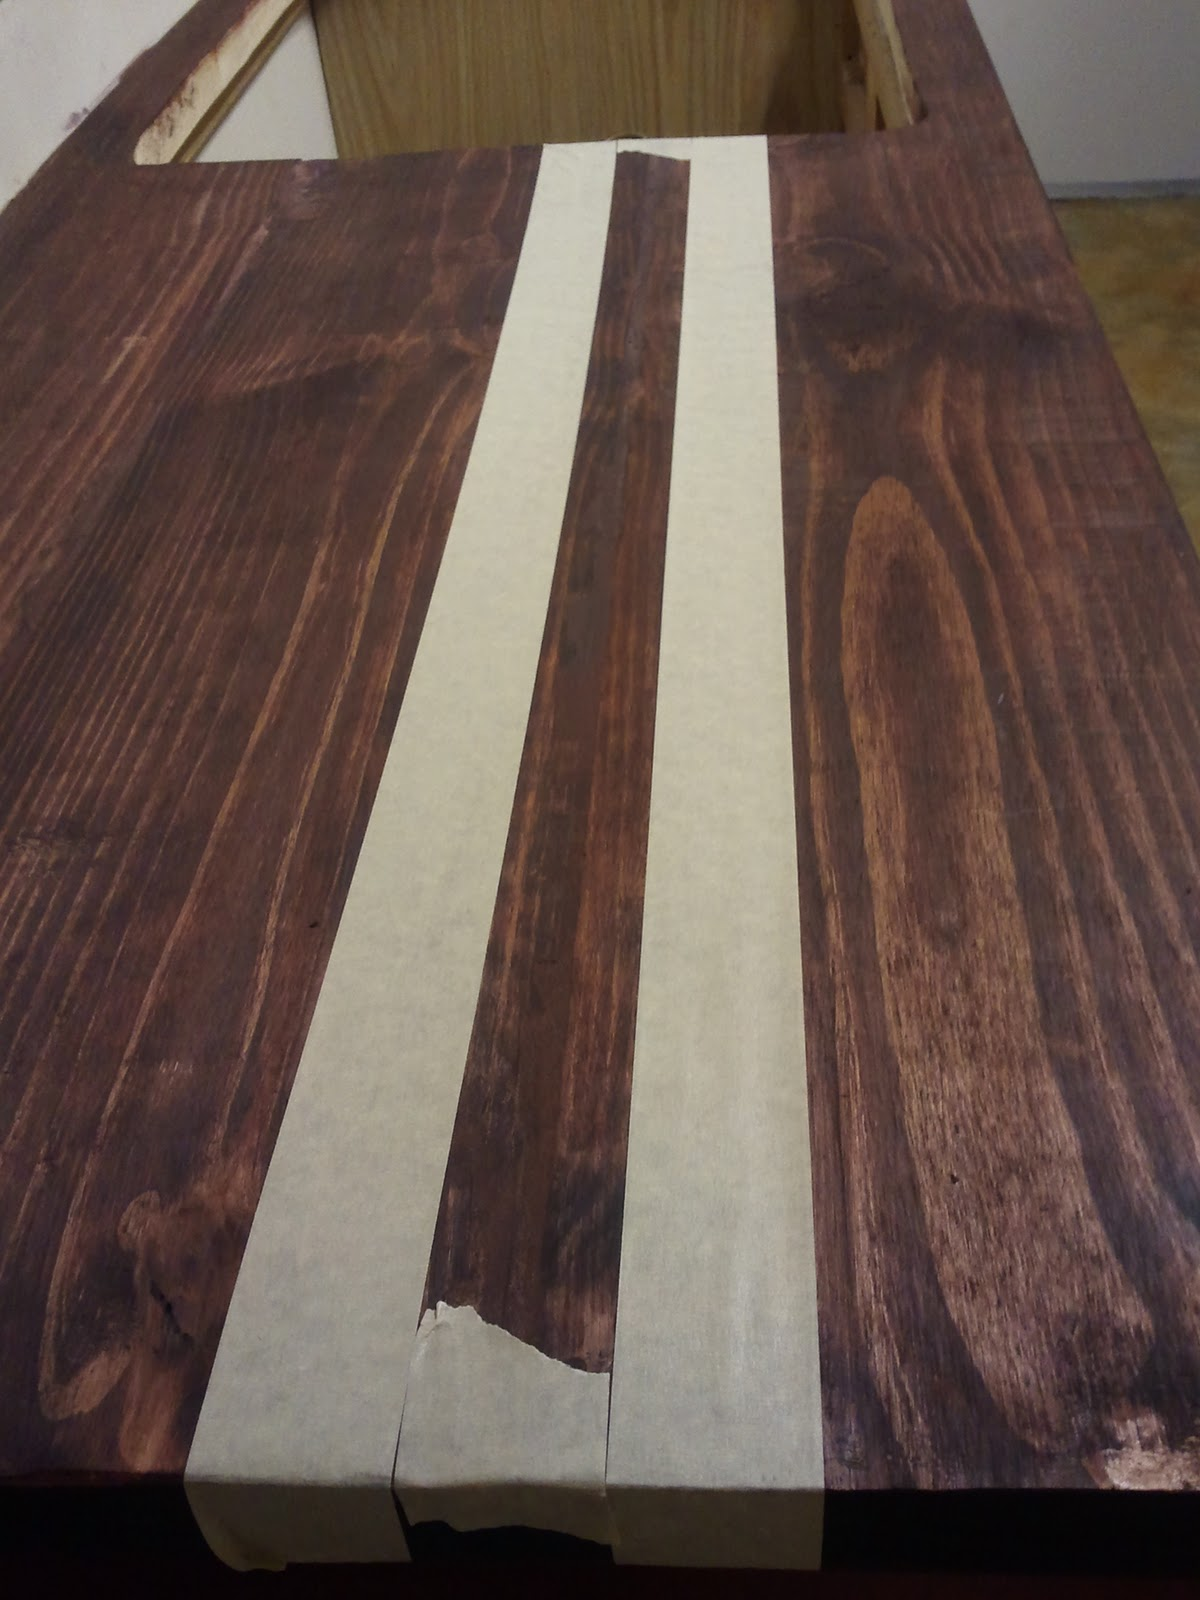 The Stain Wouldn't Stain the Wood - DIY Faux Butcher Block Countertops Tutorial